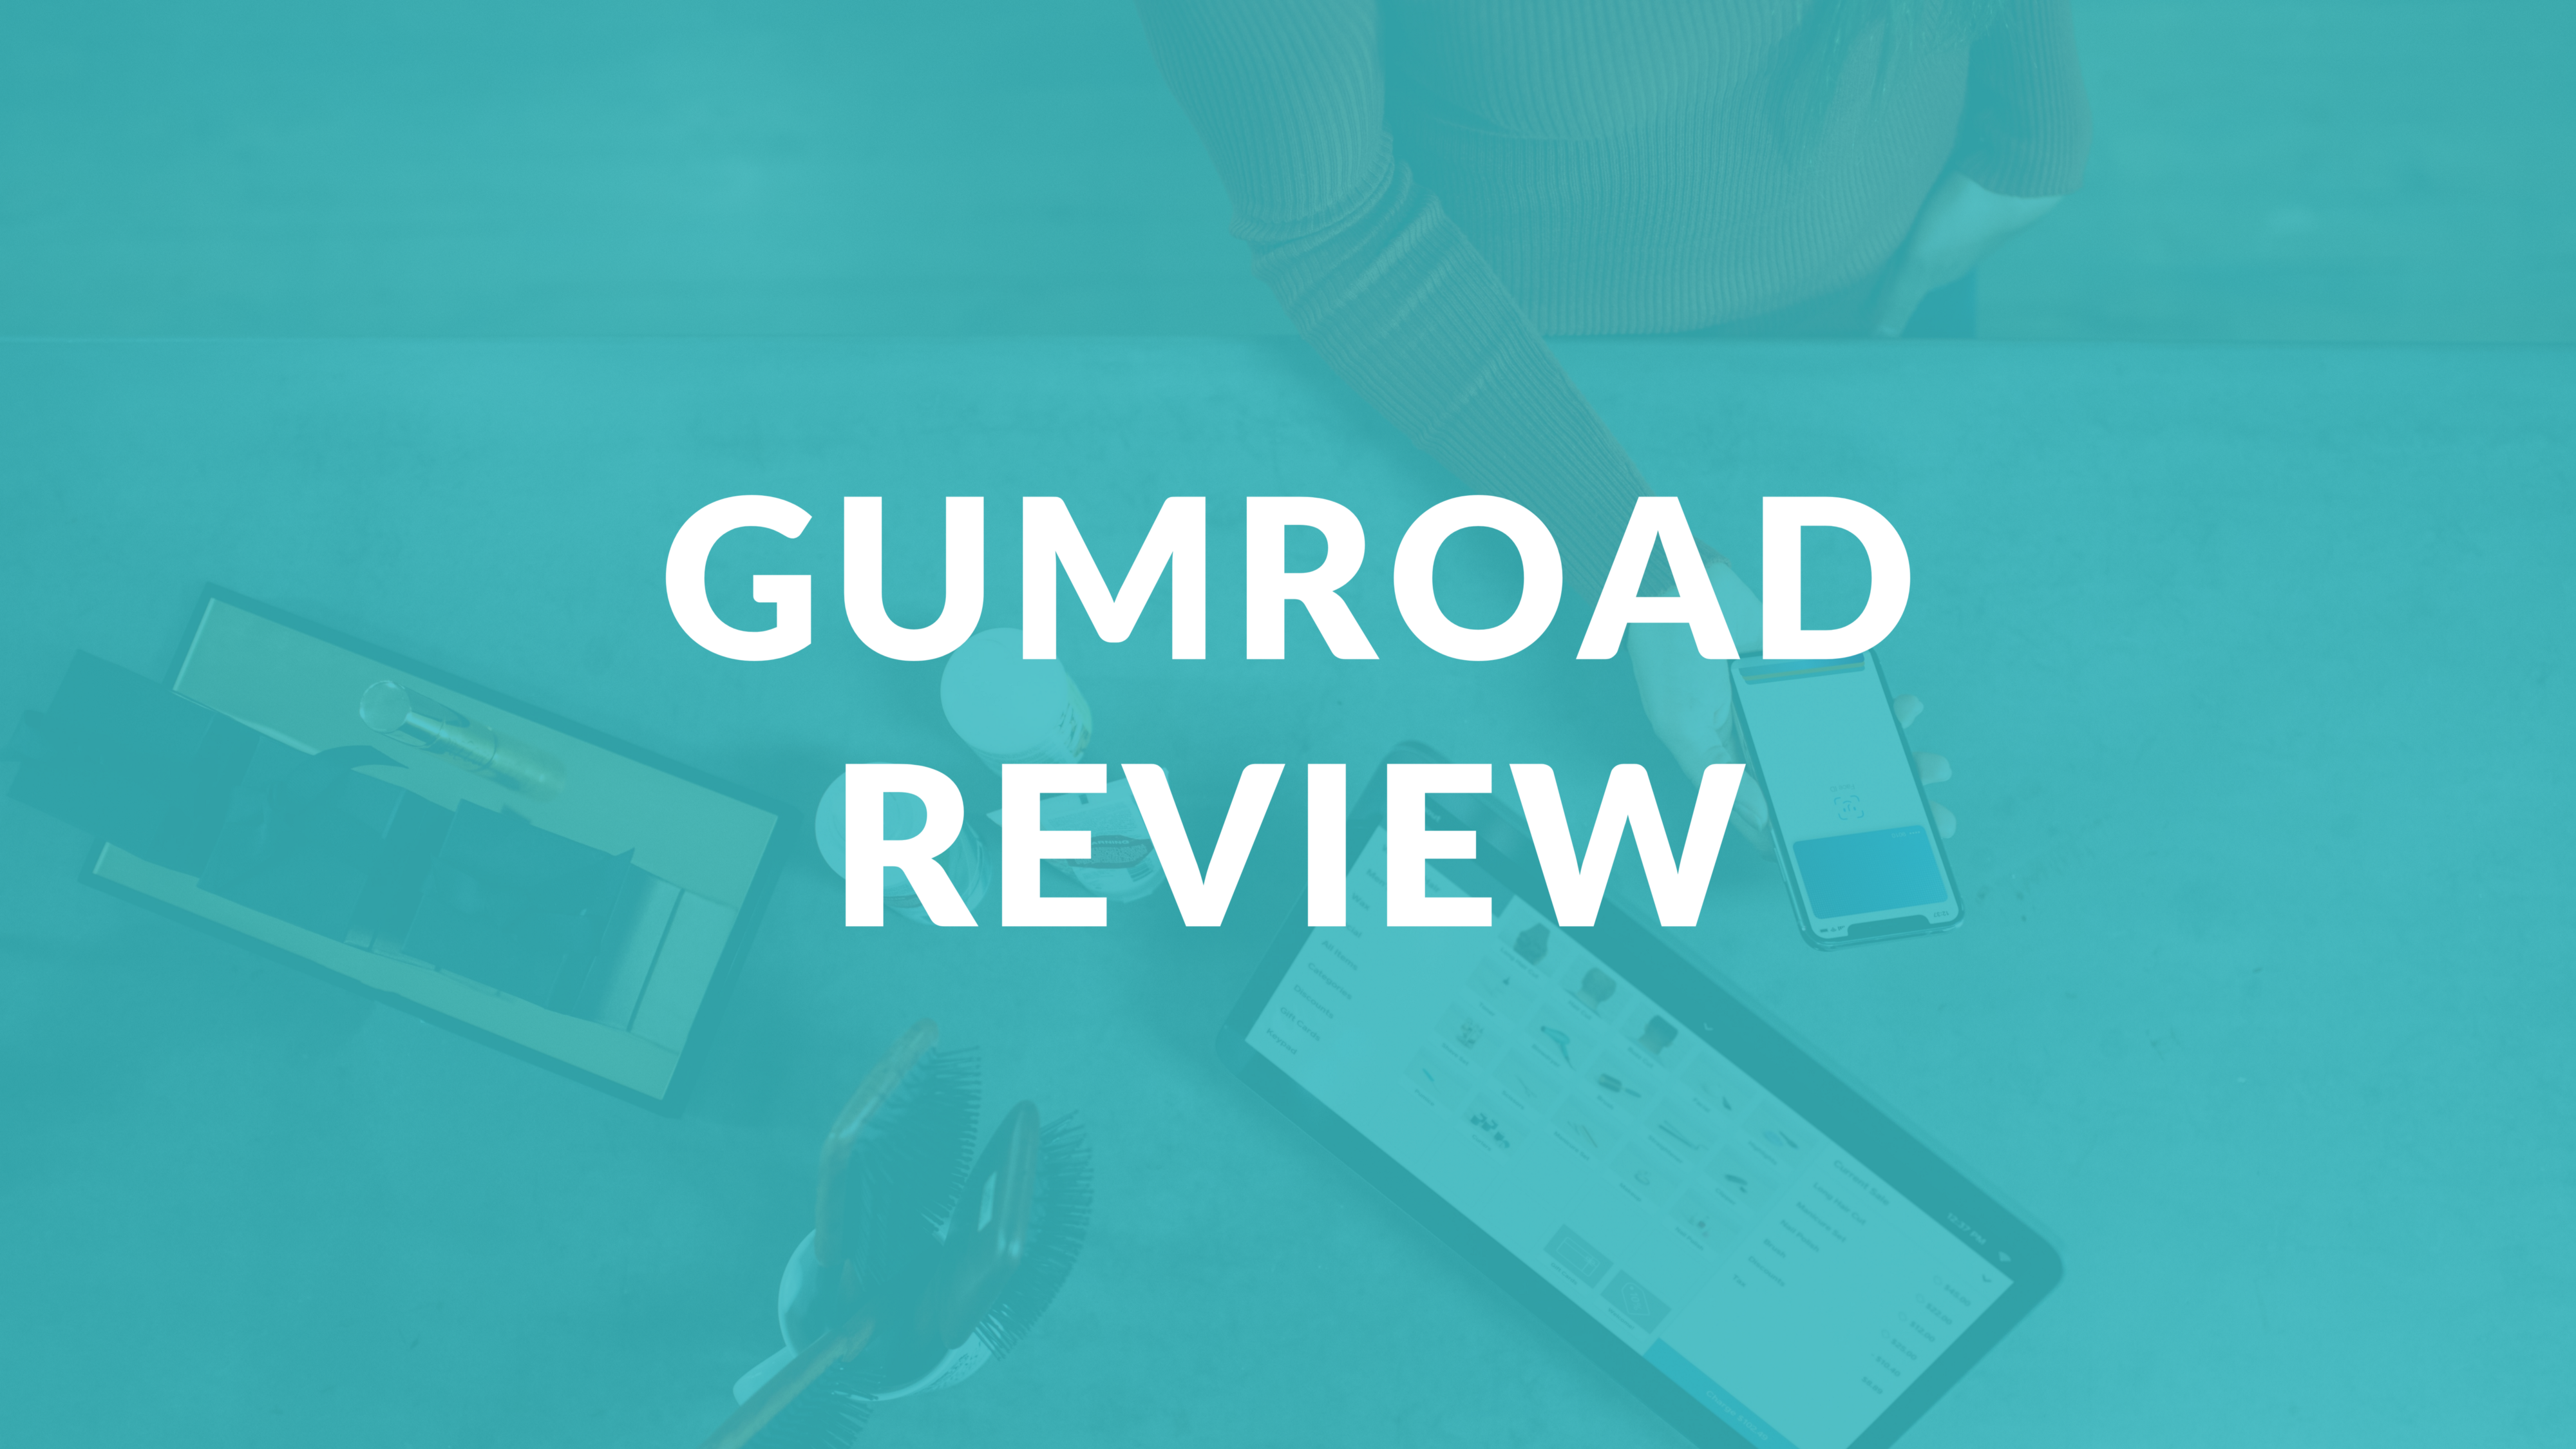 gumroad, gumroad review, how to use gumroad, gumroad tutorials, is gumroad safe, gumroad tutorials, gumroad pricing, gum road